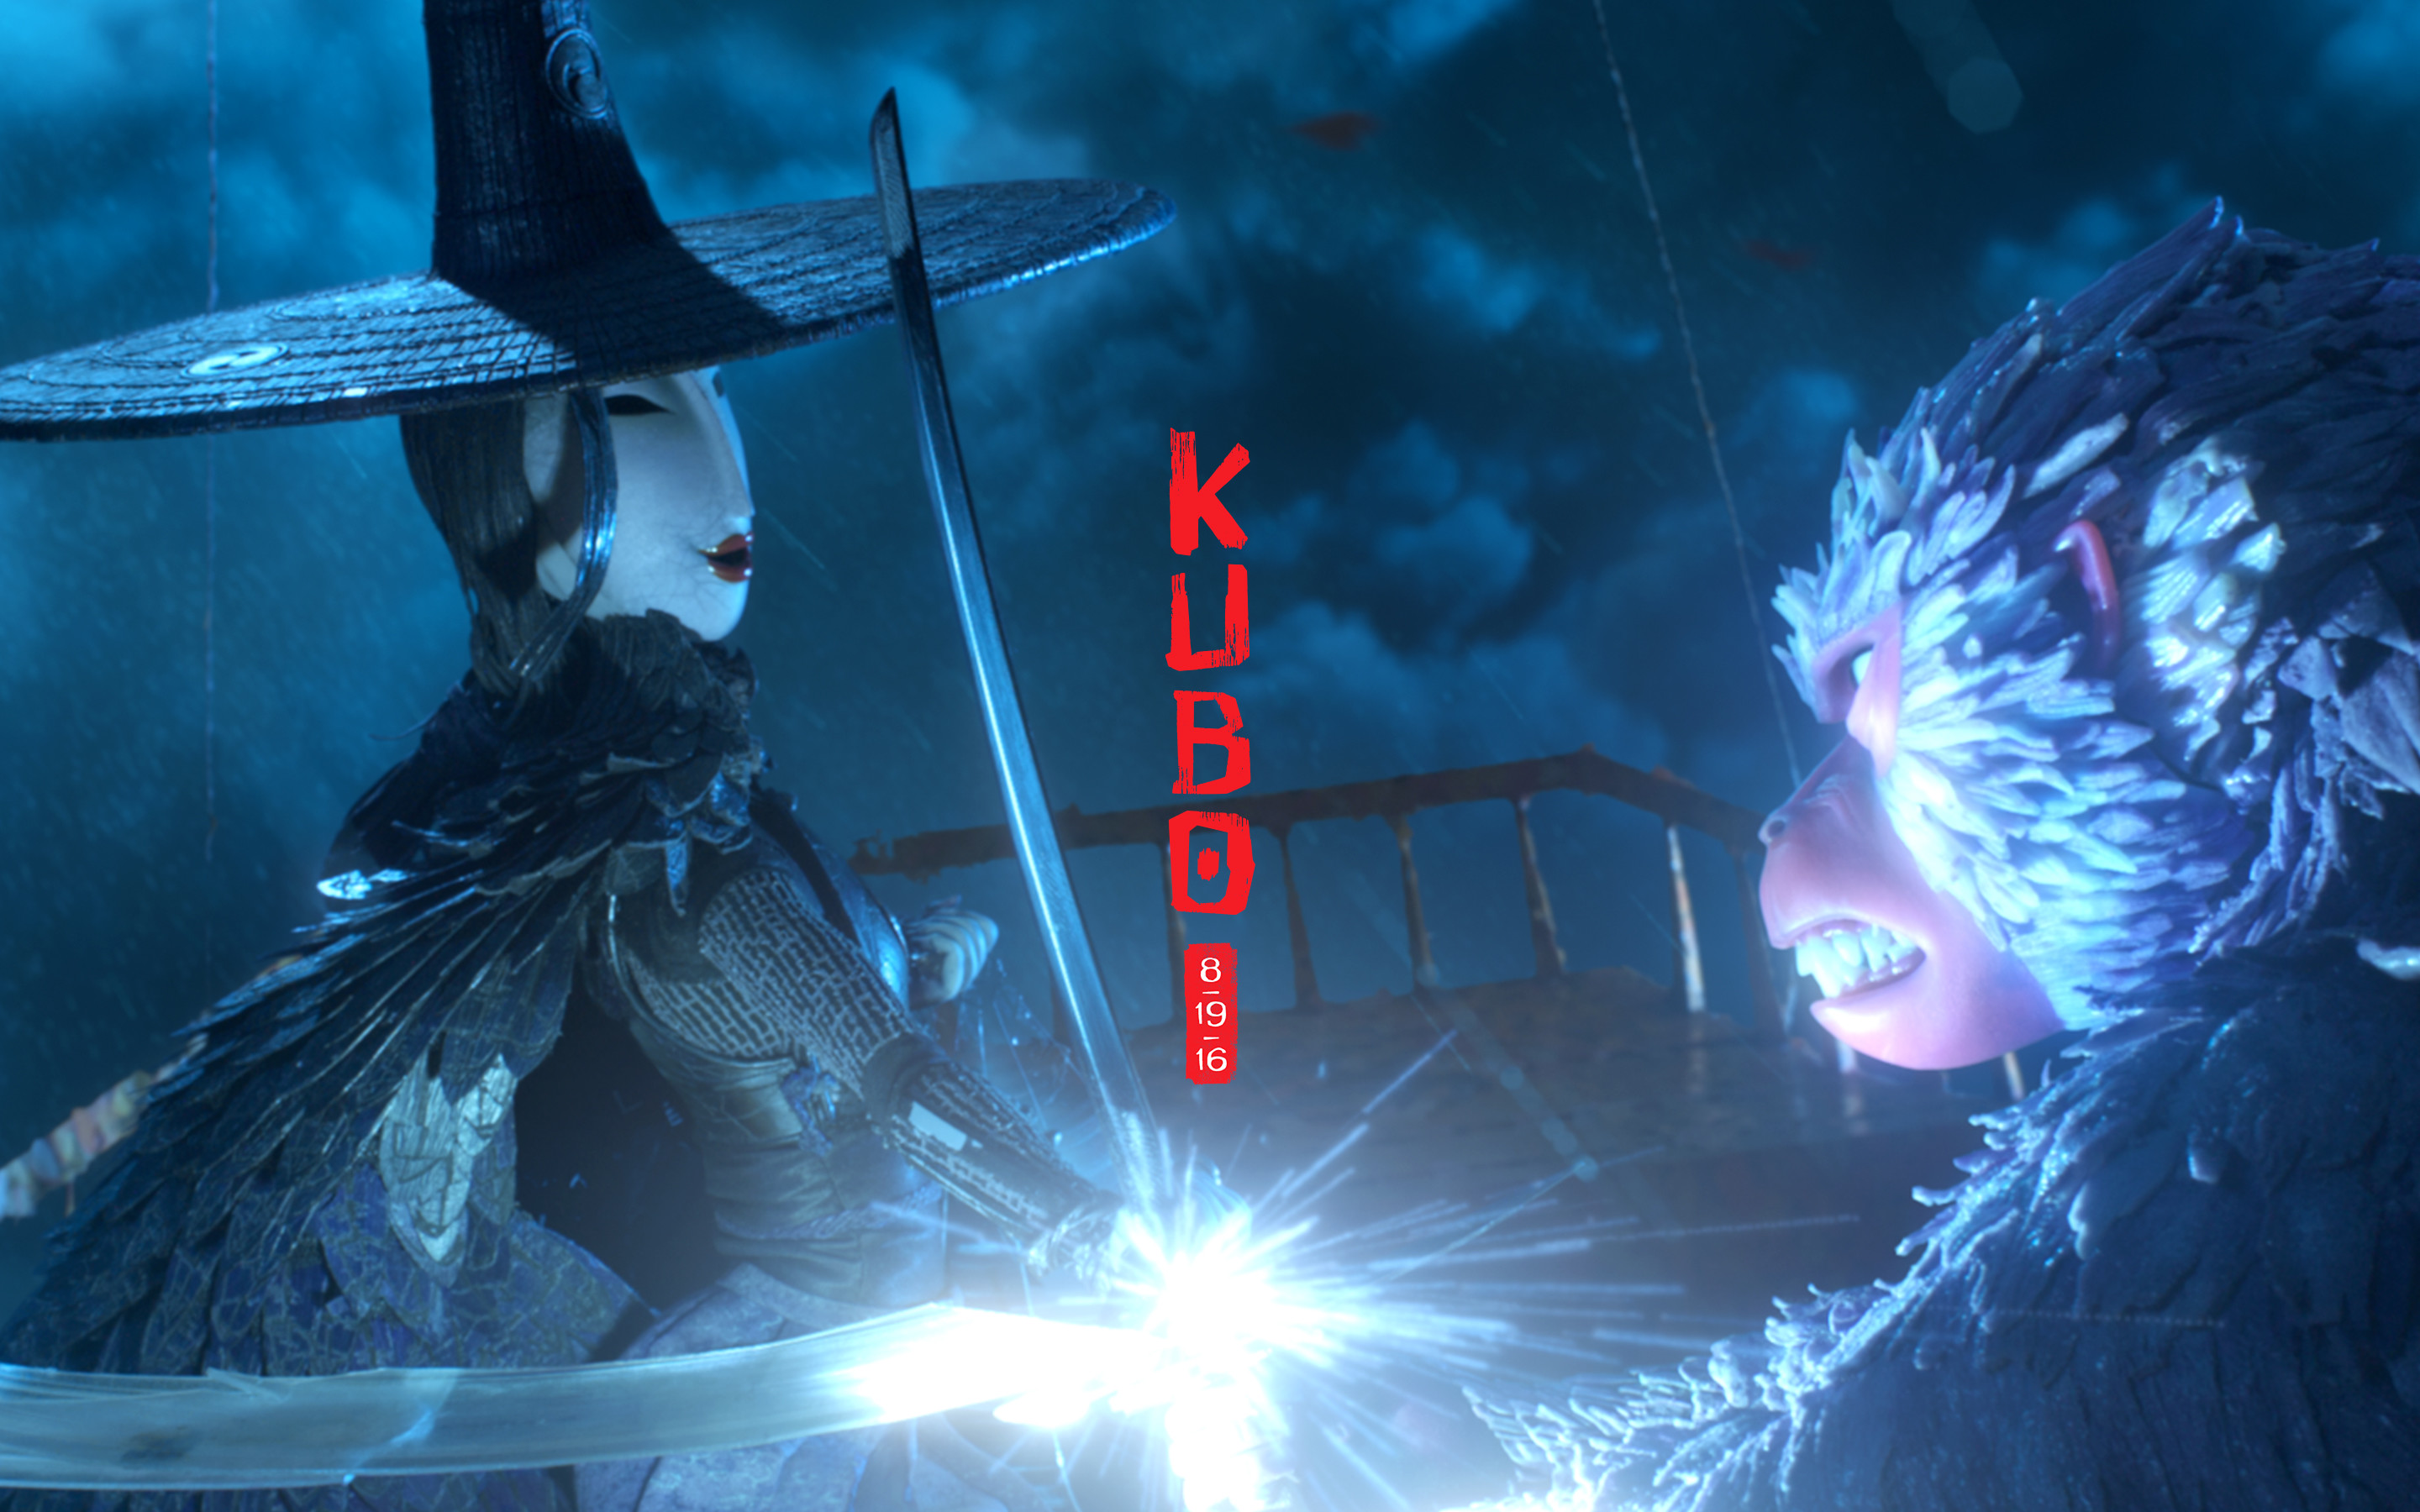 2880x1800 ... Kubo and the Two Strings wallpaper downloads ...